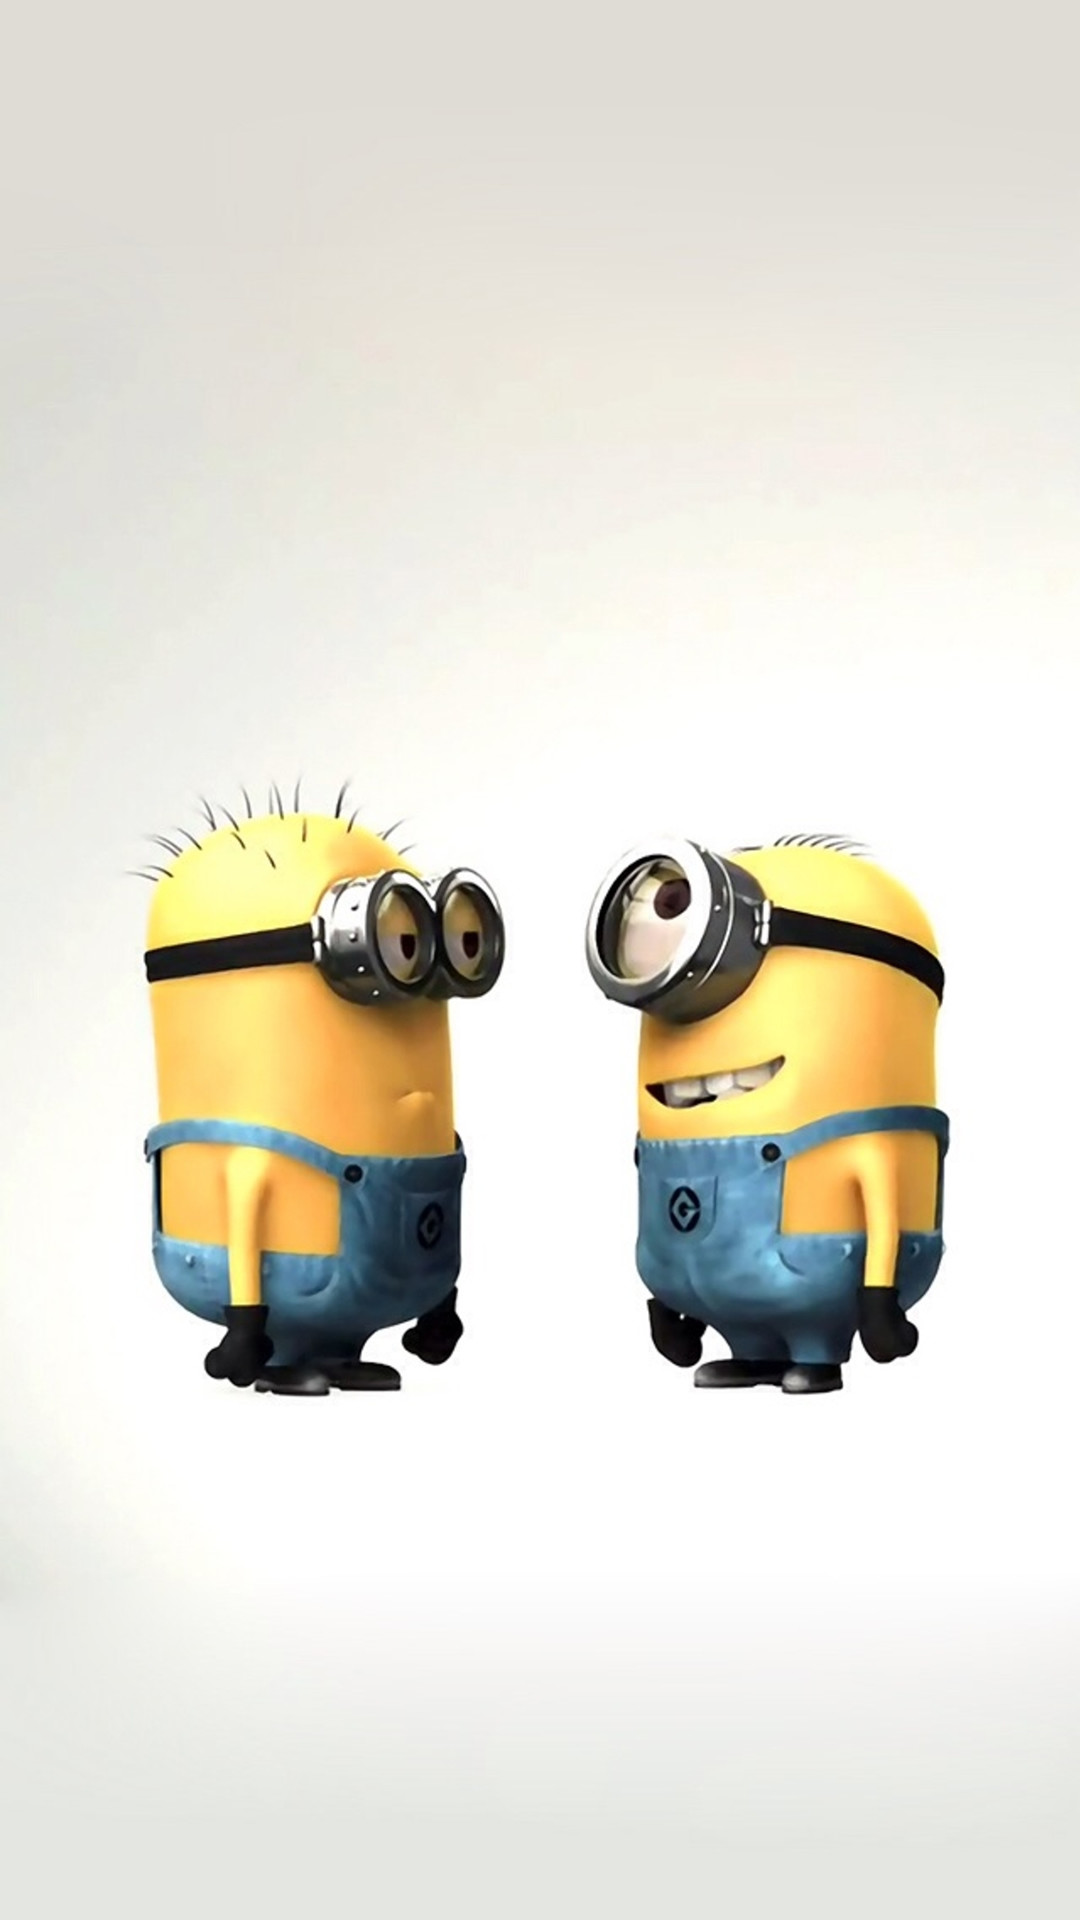 1080x1920 Funny Cute Lovely Minion Couple iPhone 8 wallpaper